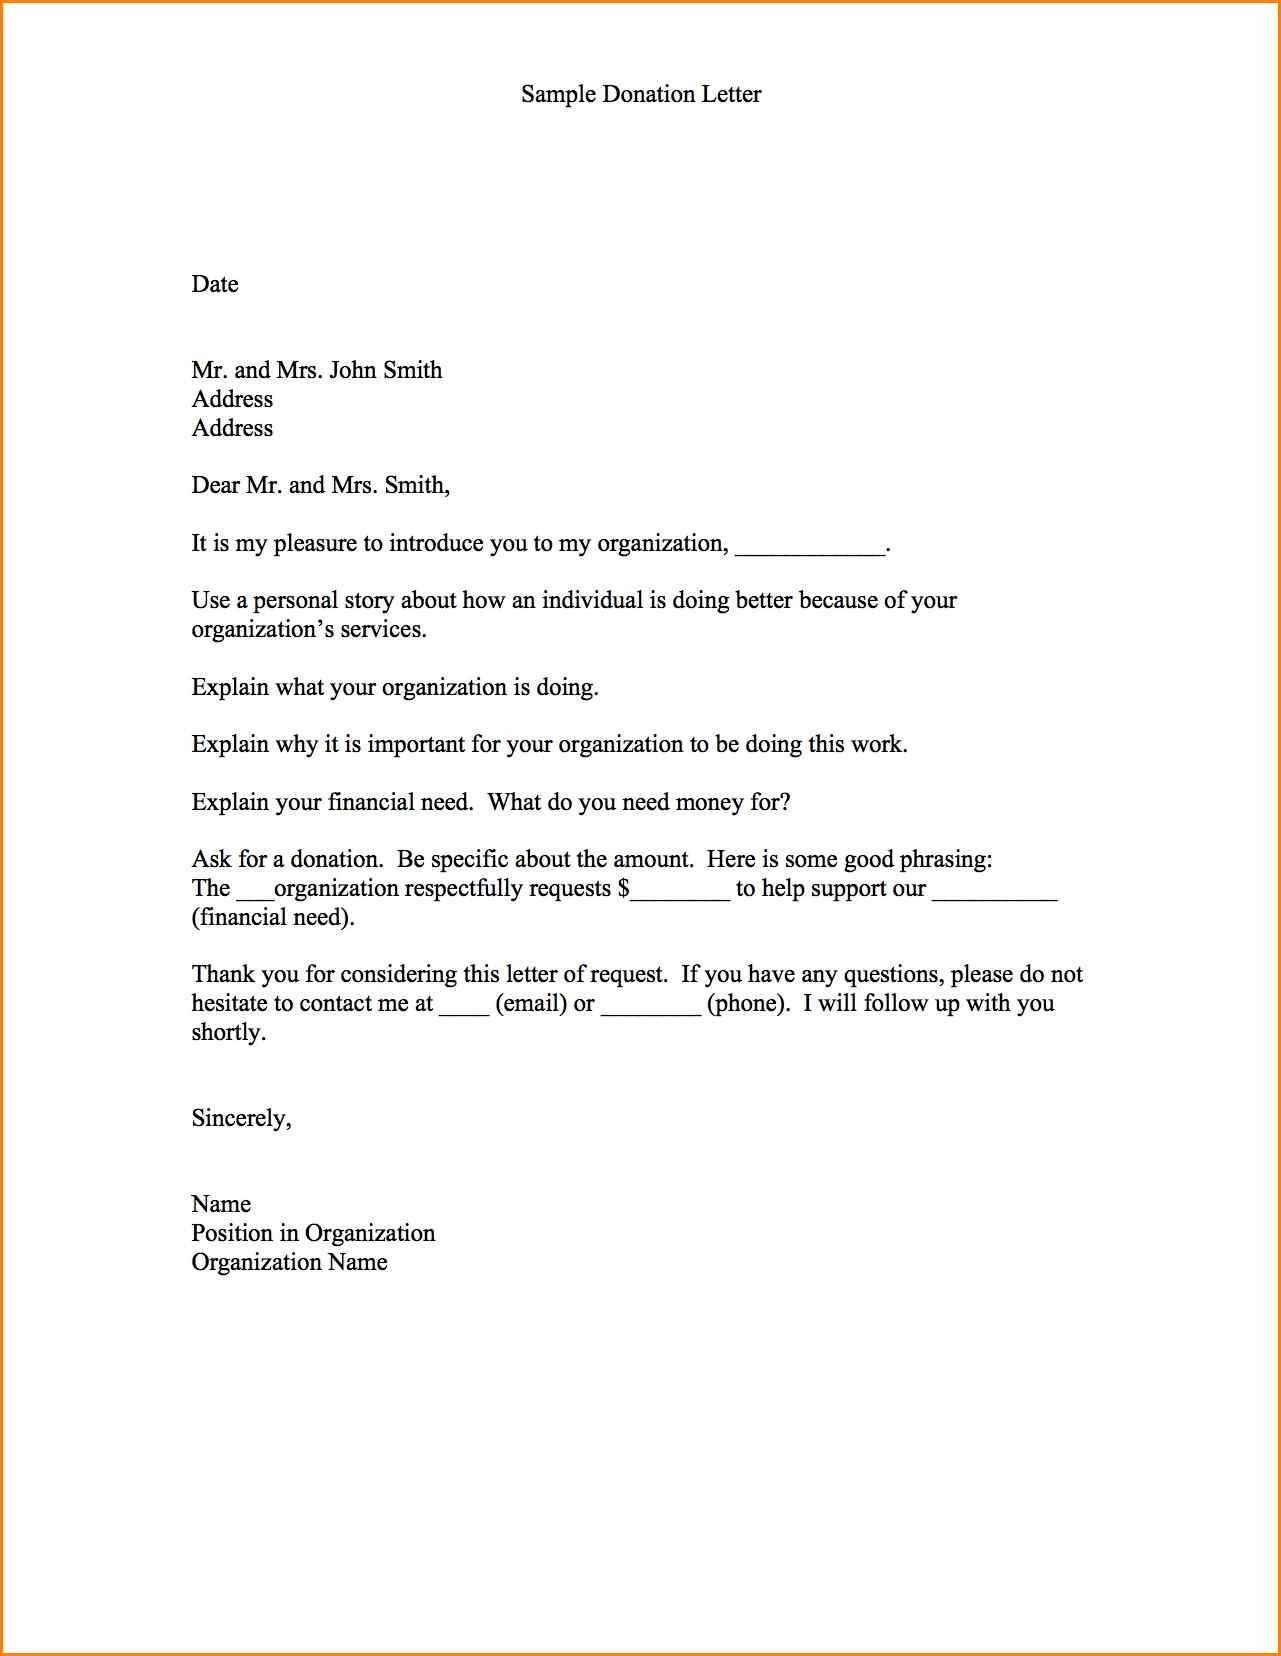 Demand Letter Template Texas - Fundraising Appeal Letter format New 11 Sample Donation Request